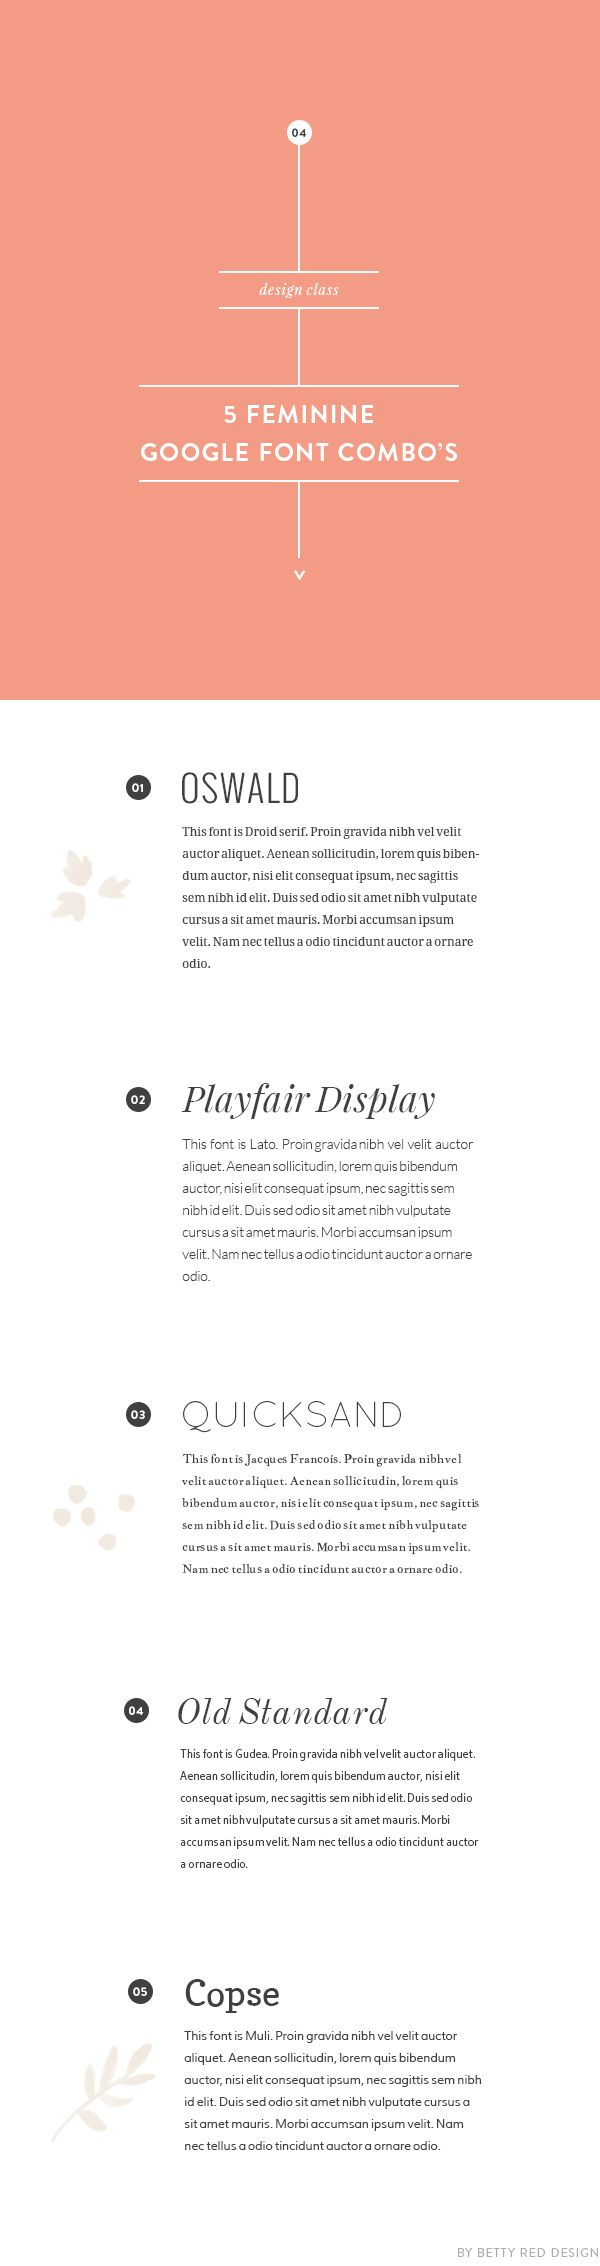 5 feminine google font combinations for your blog design | Betty Red Design